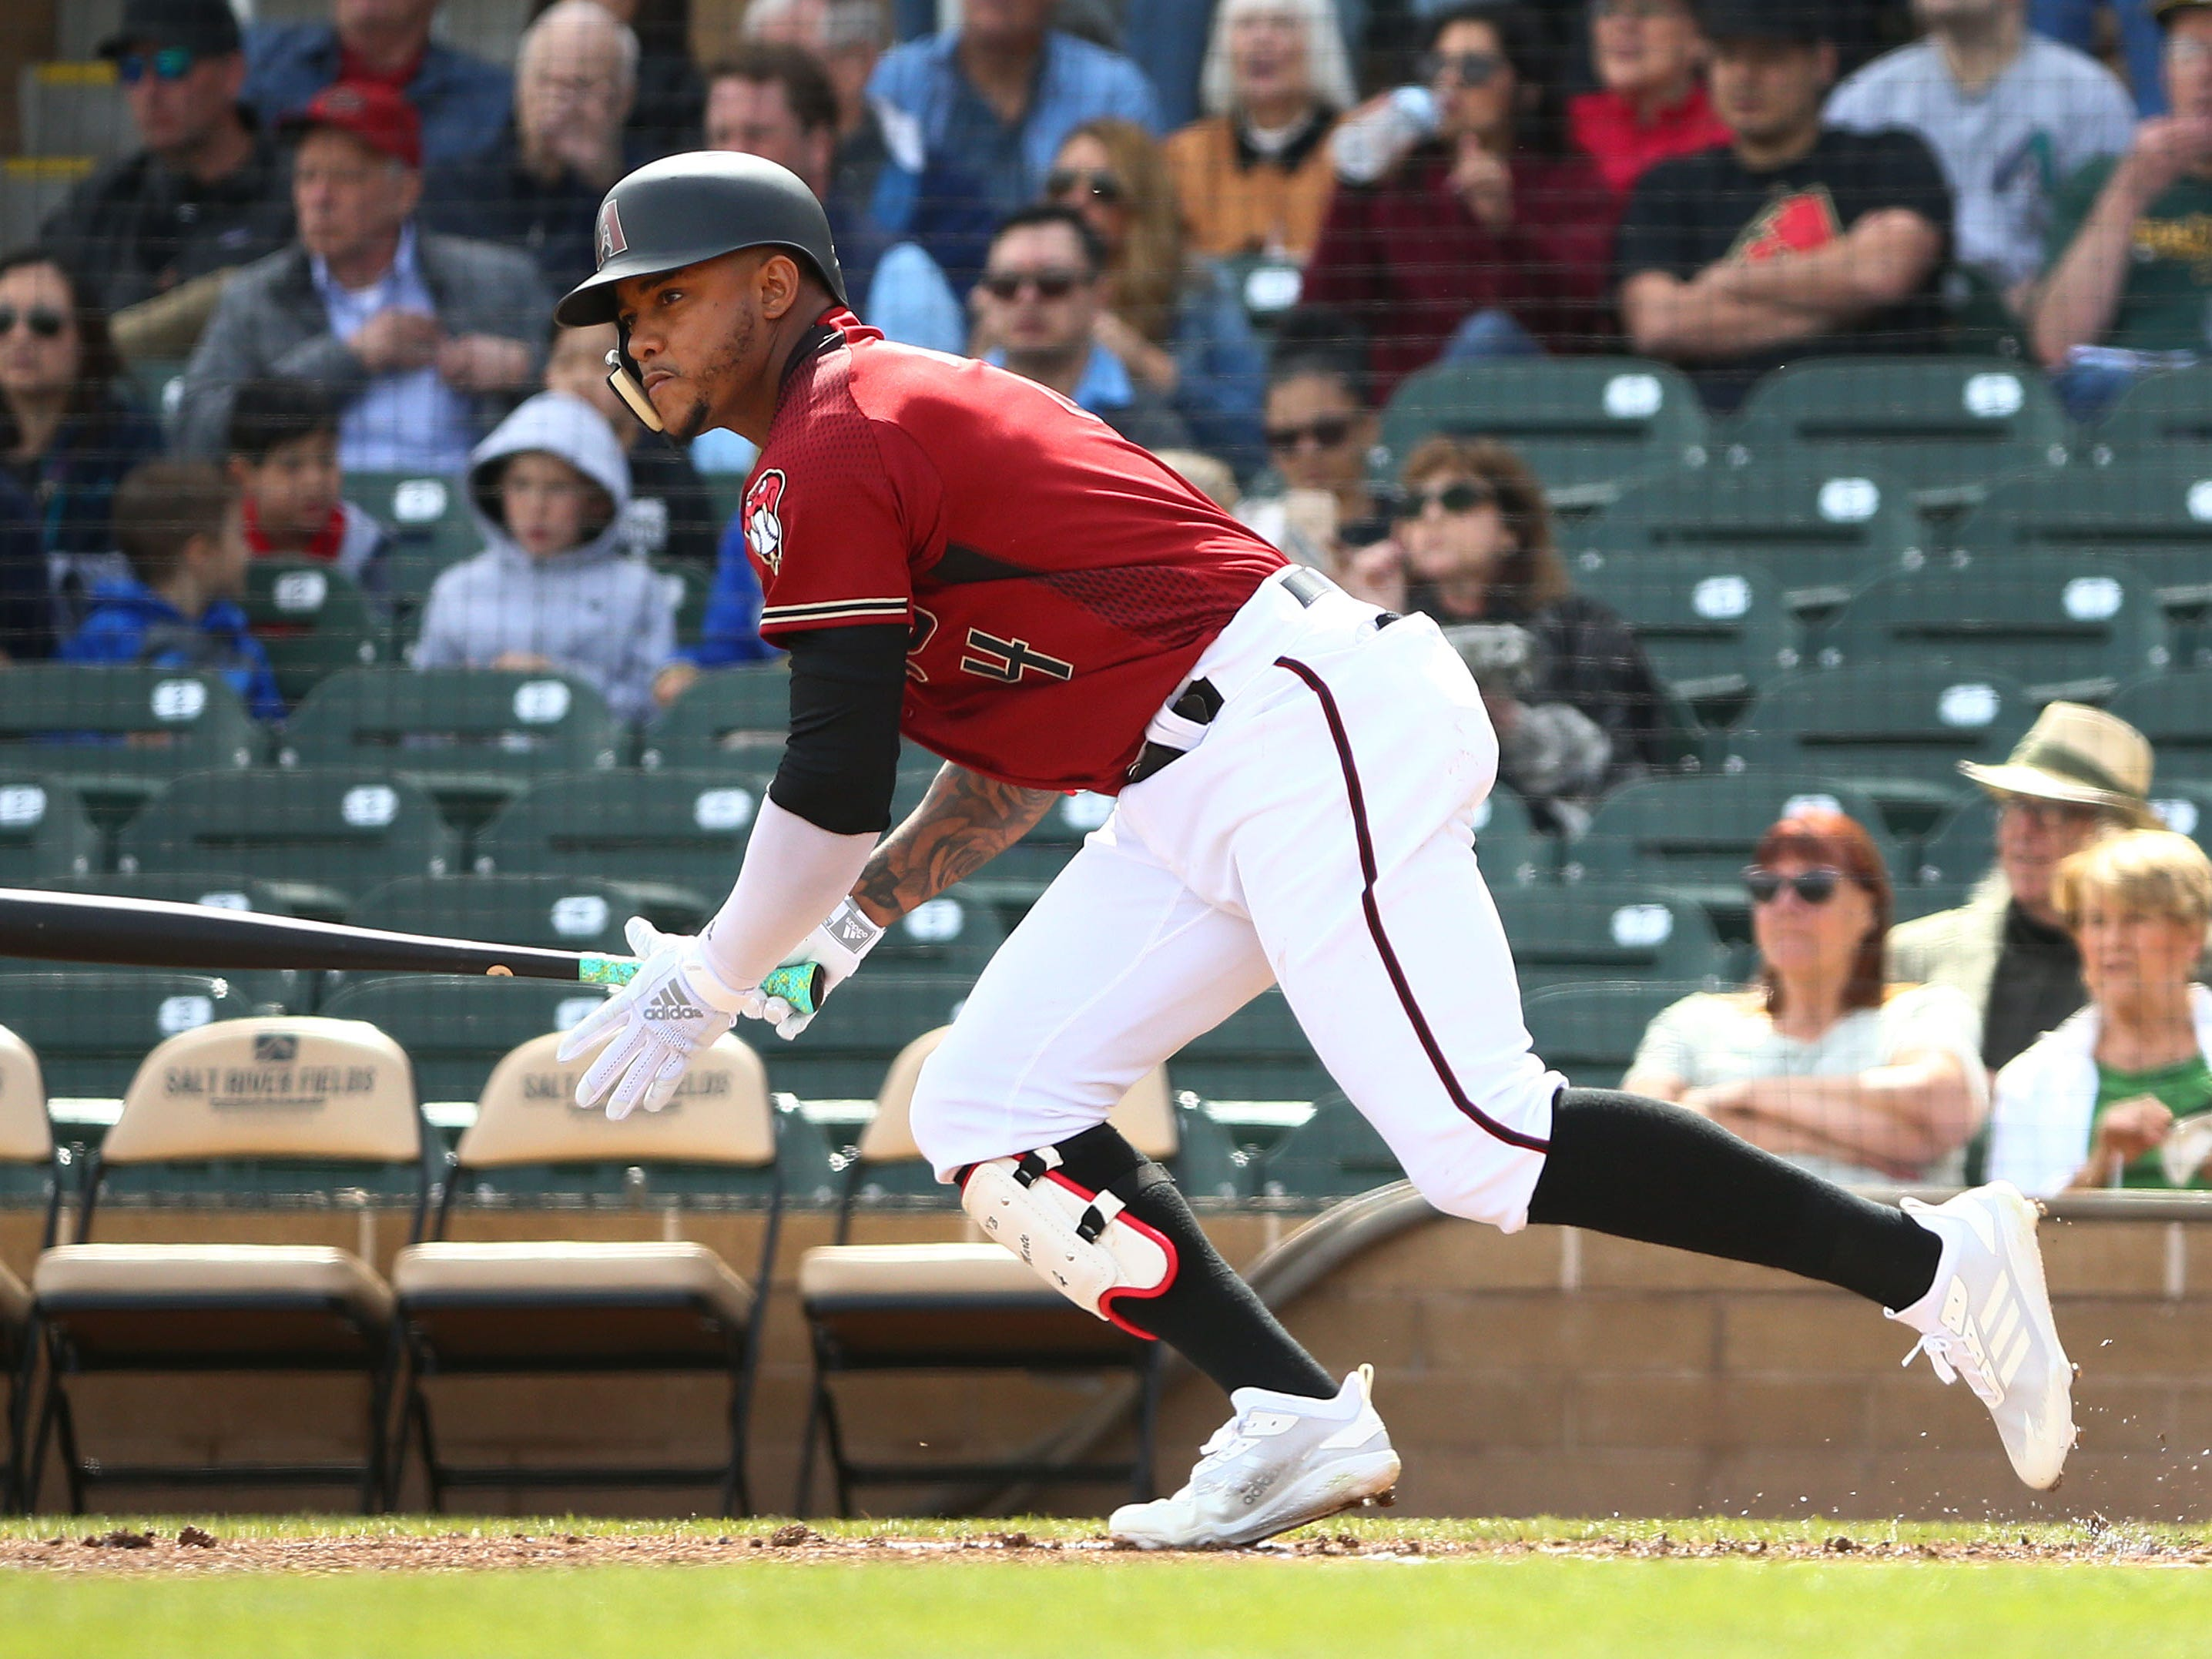 Arizona Diamondbacks Ketel Marte (4) hits a single against the Oakland A's in the first inning during a spring training game on Feb. 25, 2019 at Salt River Fields in Scottsdale, Ariz.